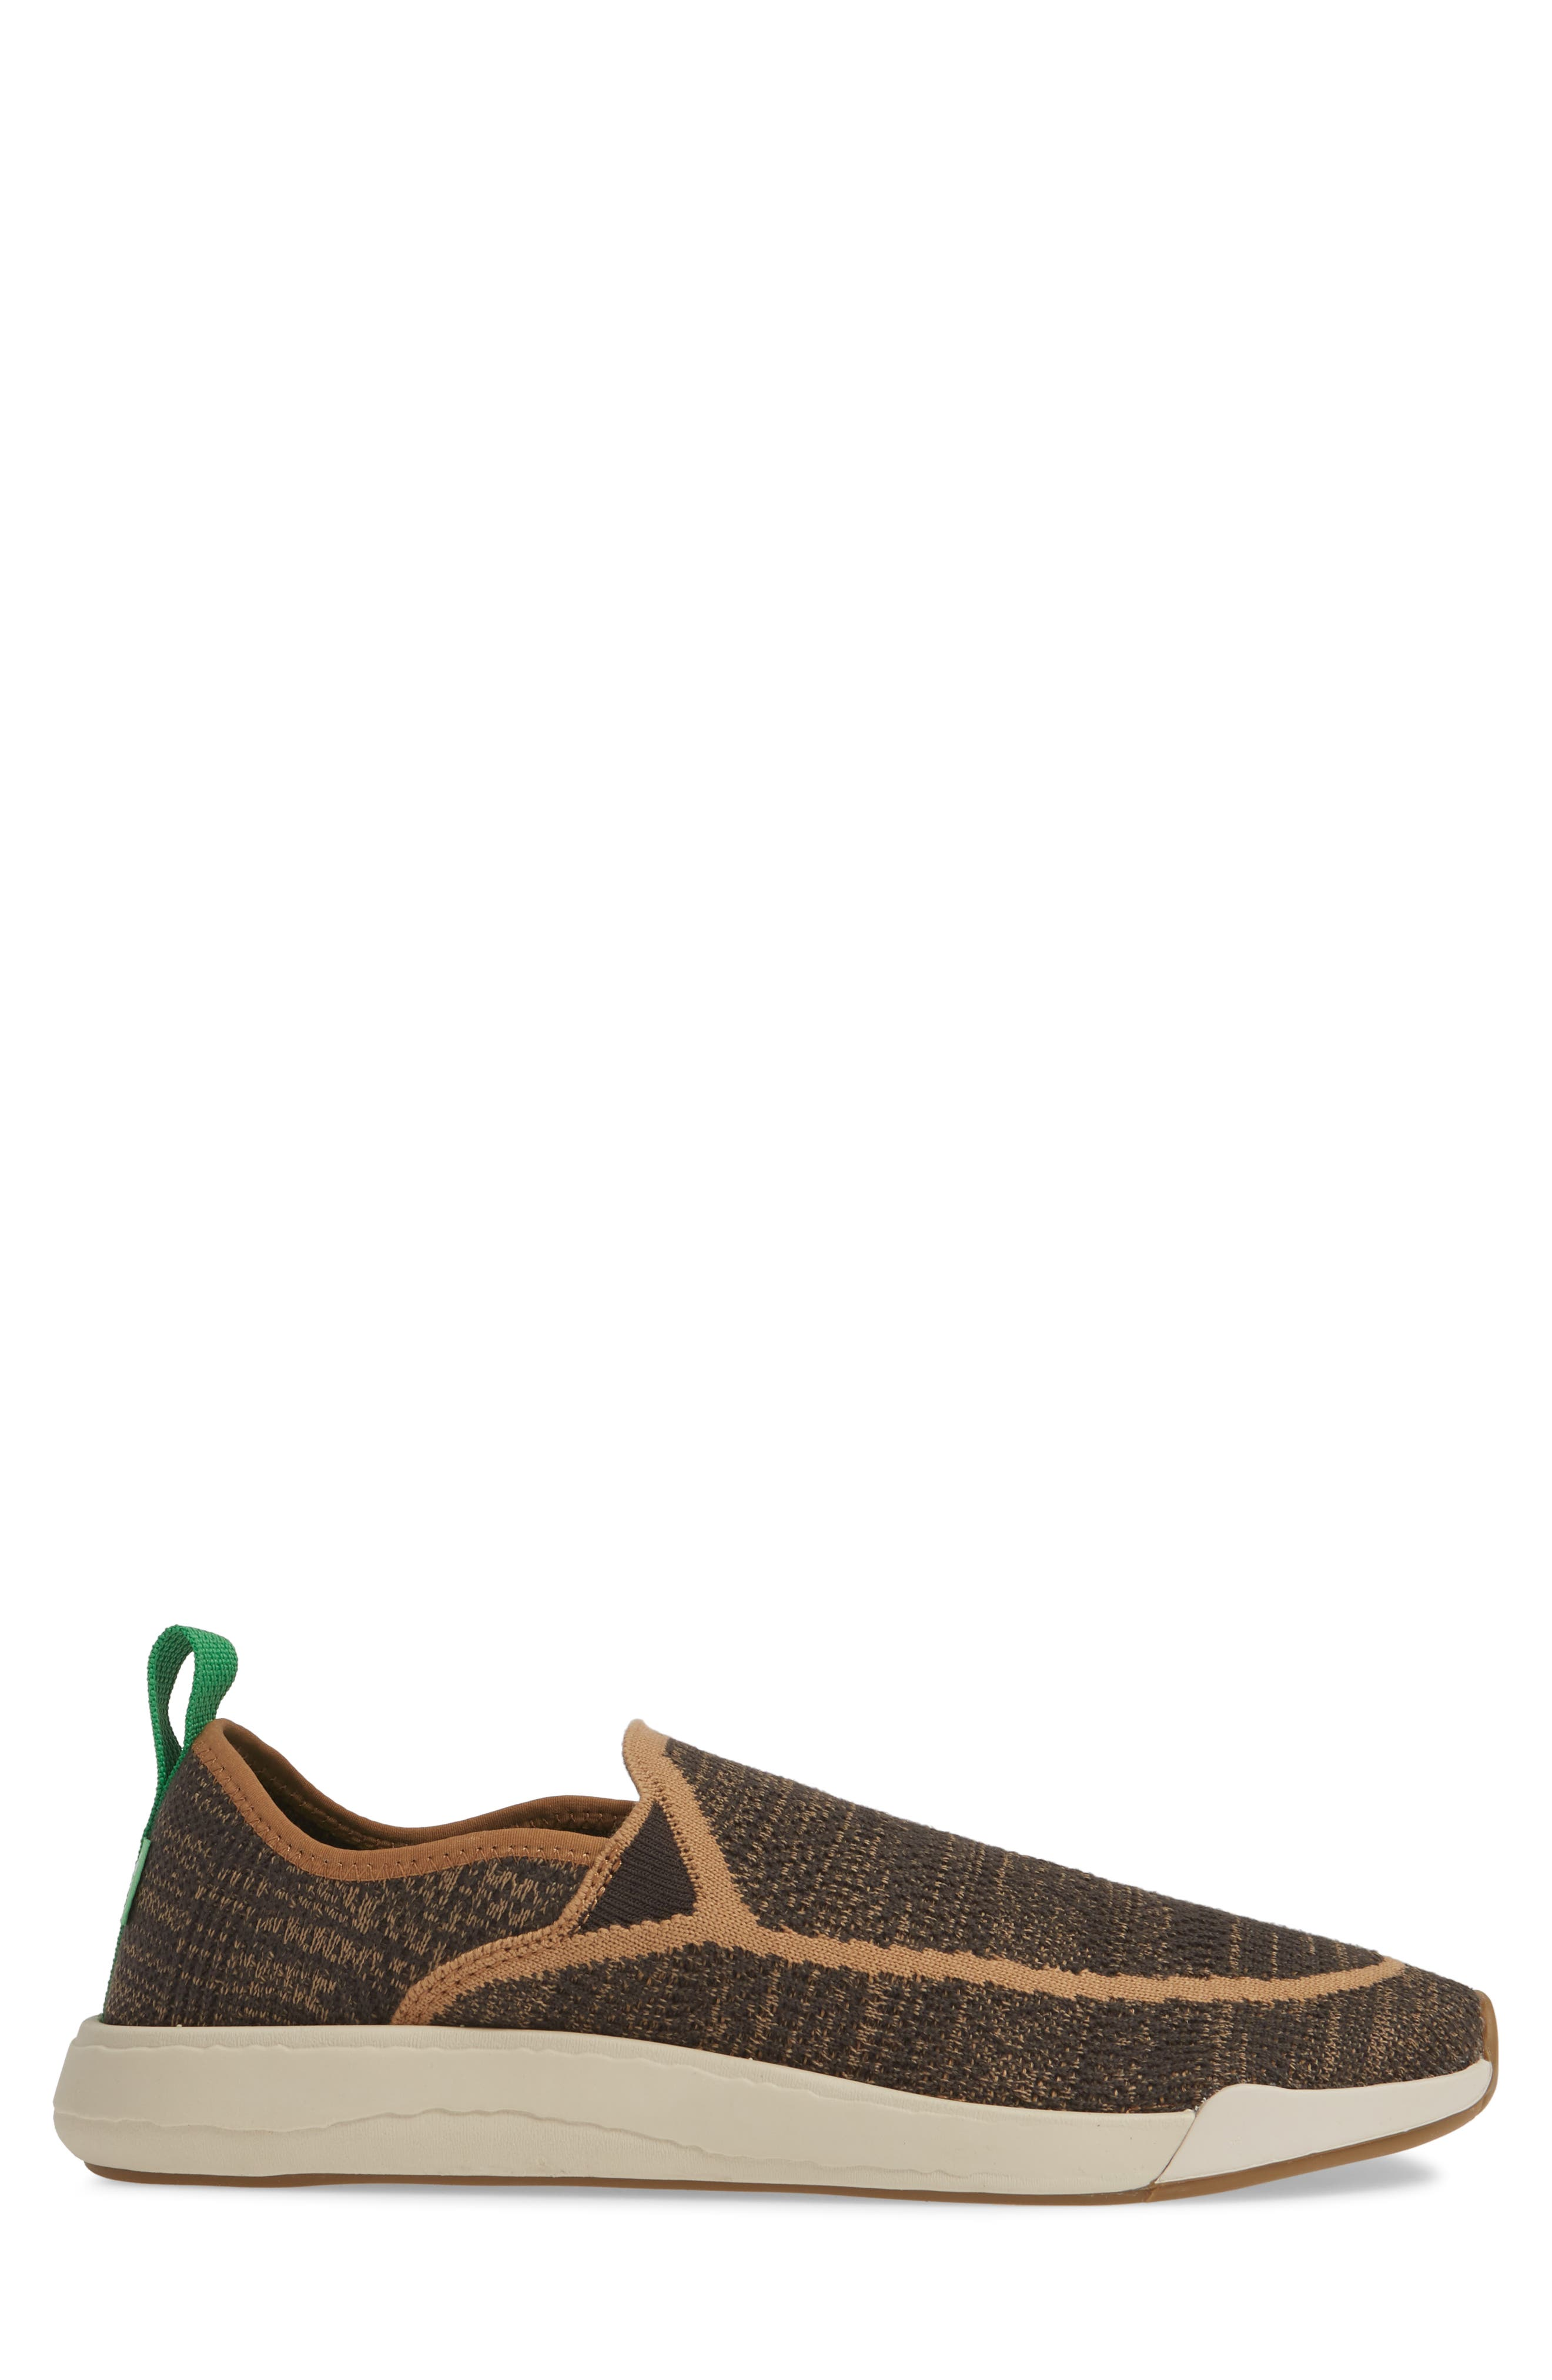 SANUK, Chiba Quest Knit Slip-On Sneaker, Alternate thumbnail 3, color, BROWN NATURAL